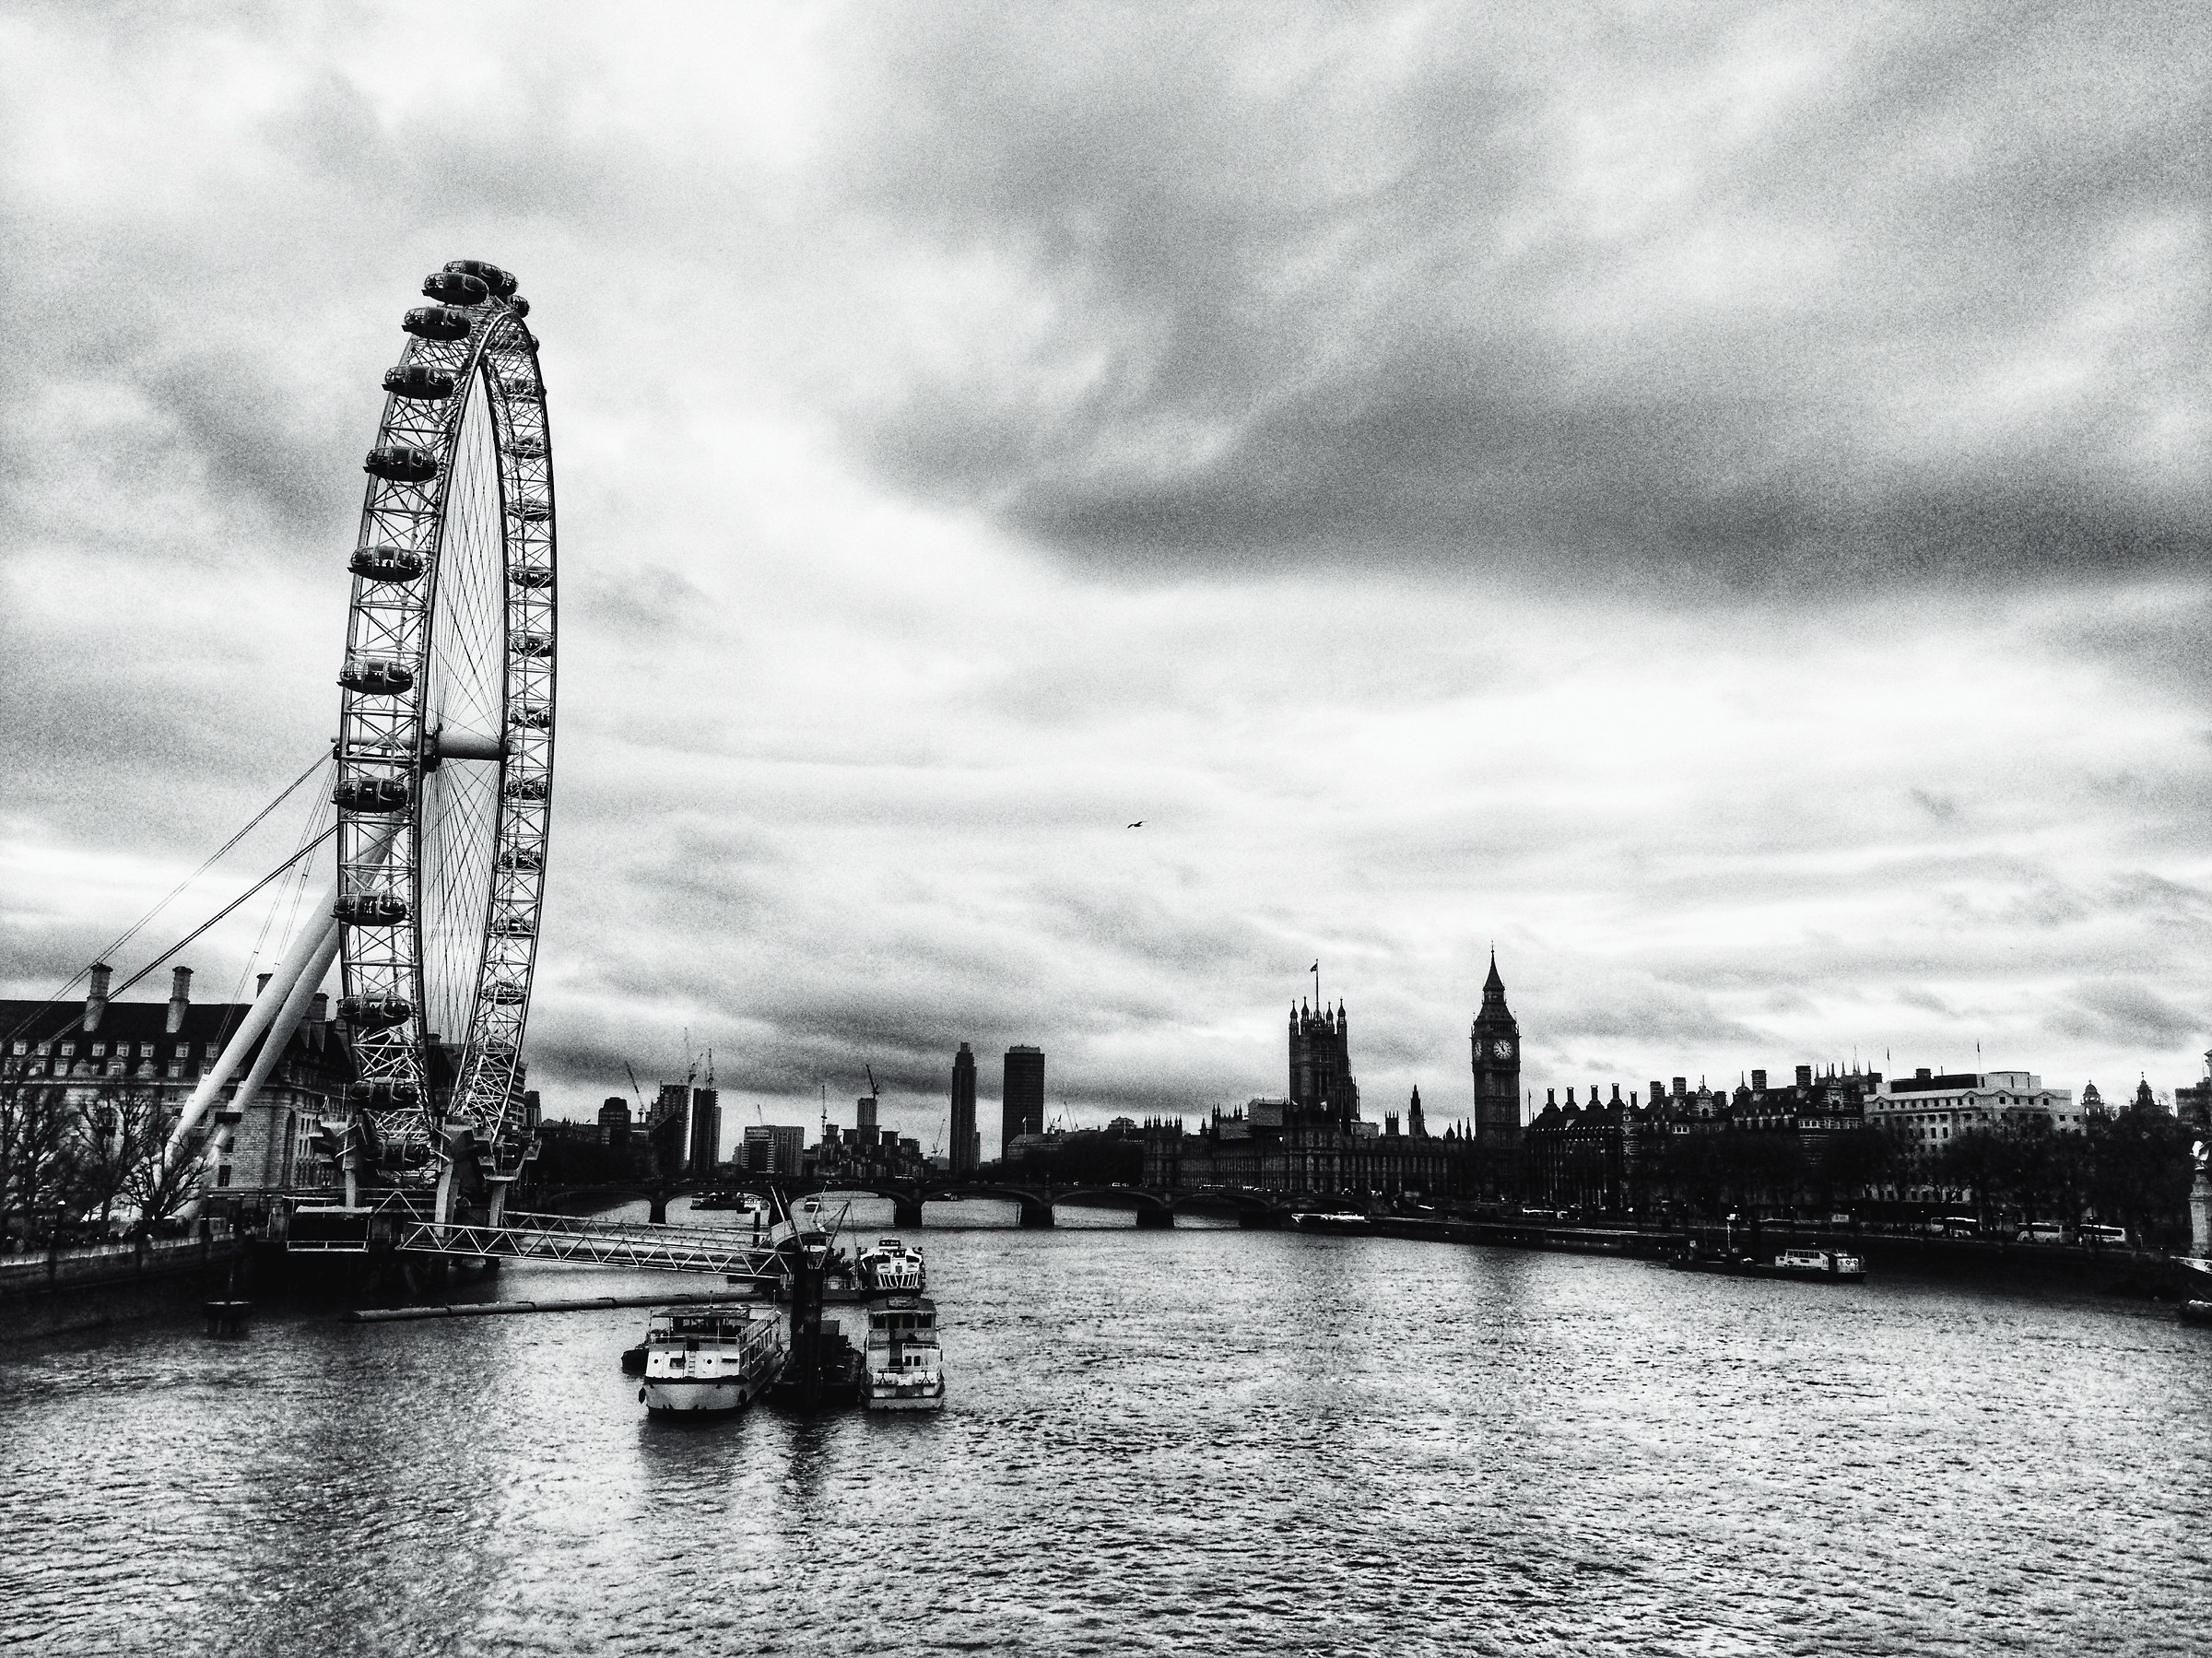 One day in London...